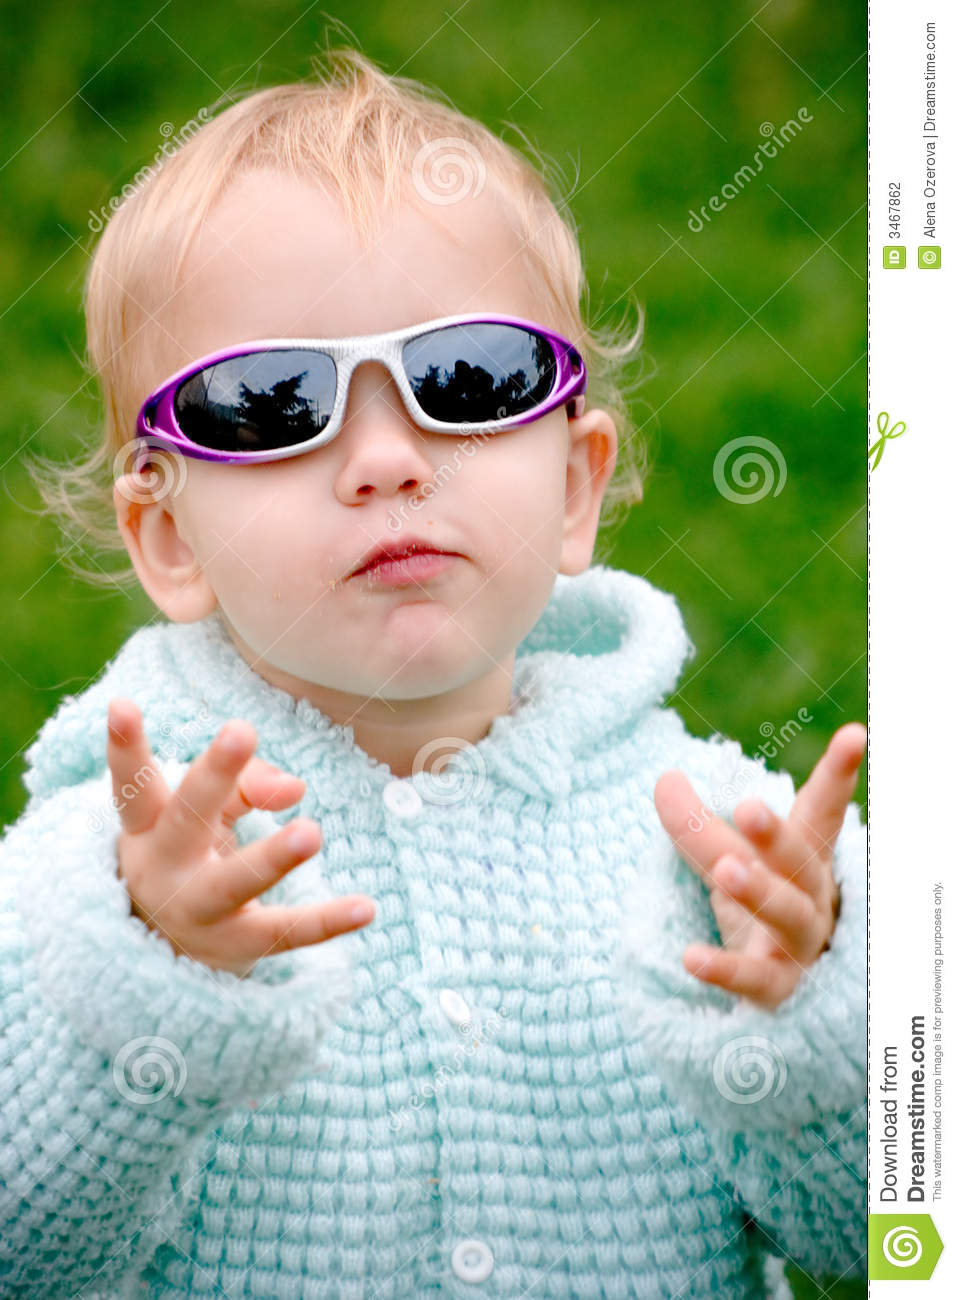 Baby Girl Blog Funny Child In Glasses Stock Photo Image Of Outdoors